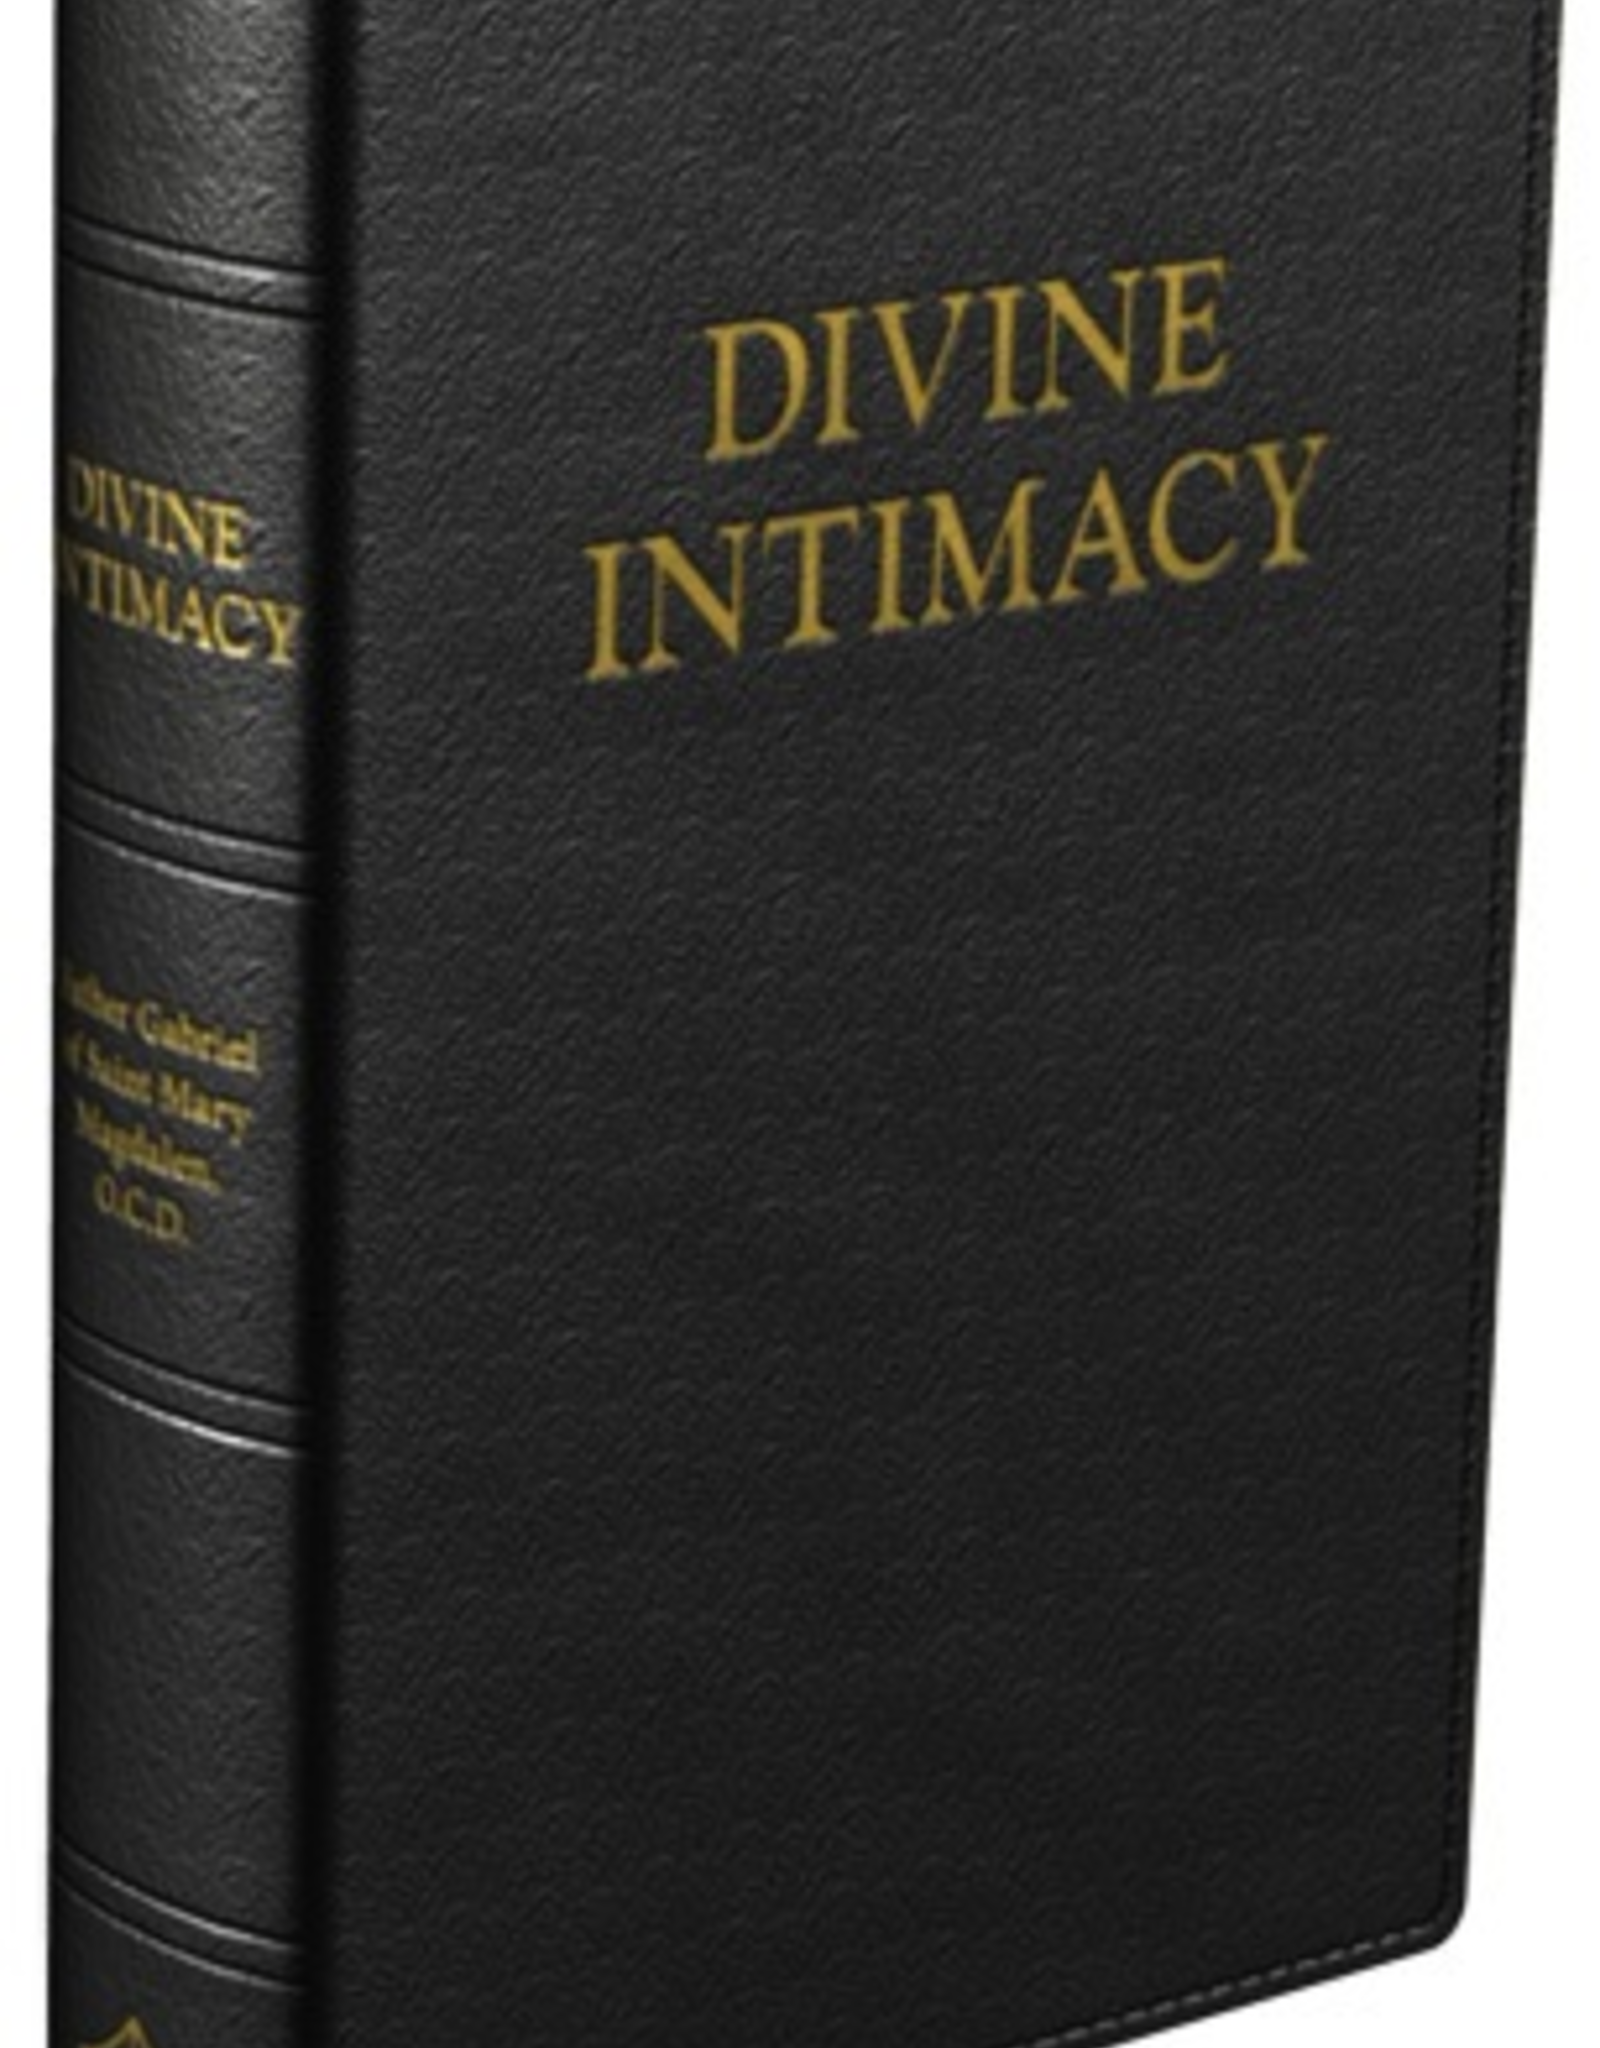 Baronius Press Divine Intimacy, by Gabriel of St. Mary Magdalen